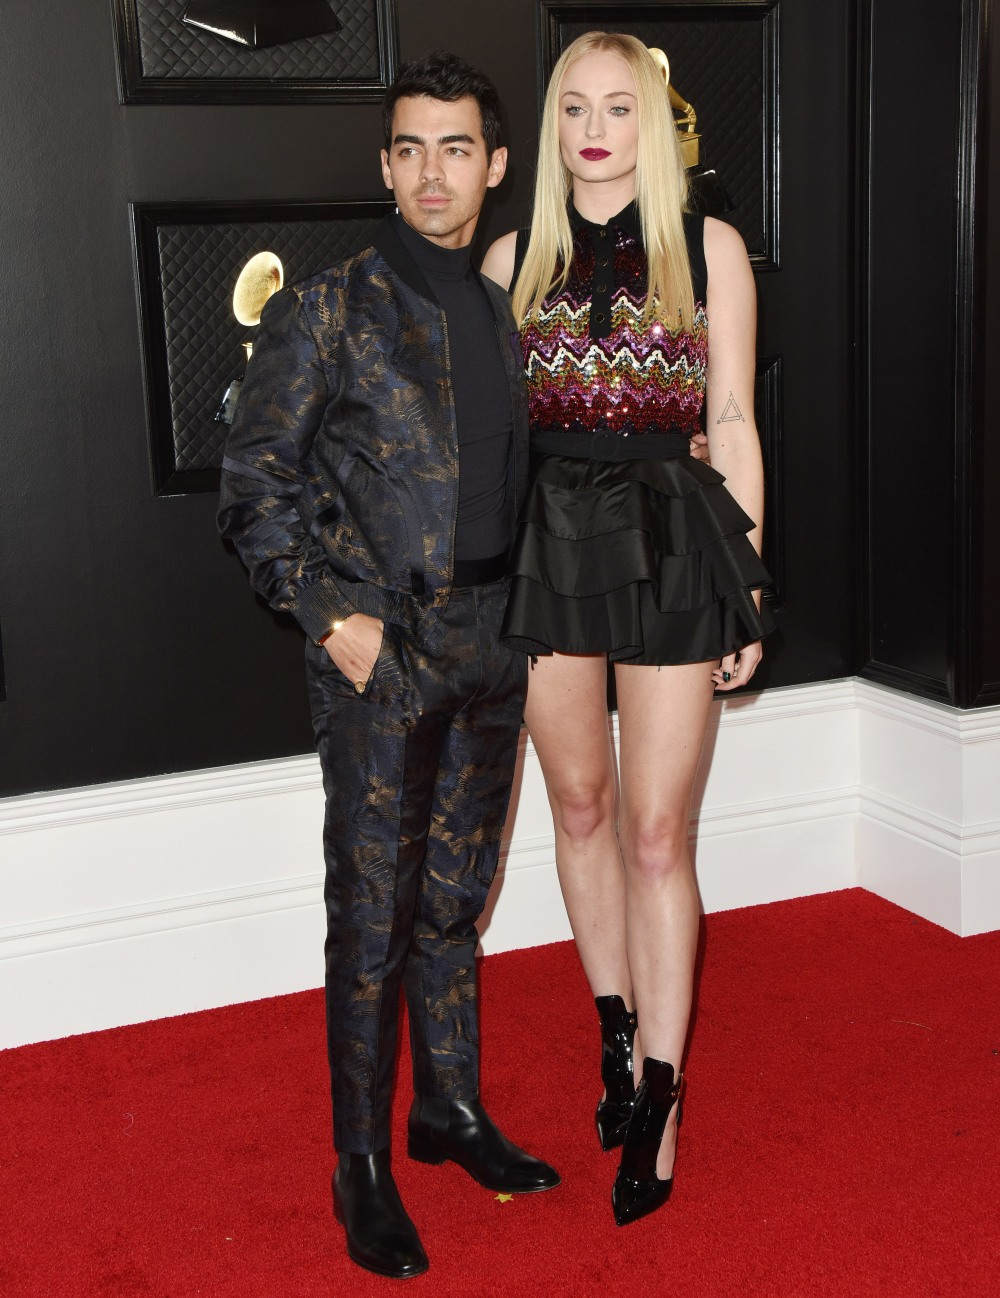 Joe Jonas, Sophie Turner arrives at the 62nd Annual GRAMMY Awards at Staples Center on January 26, 2020 in Los Angeles, California